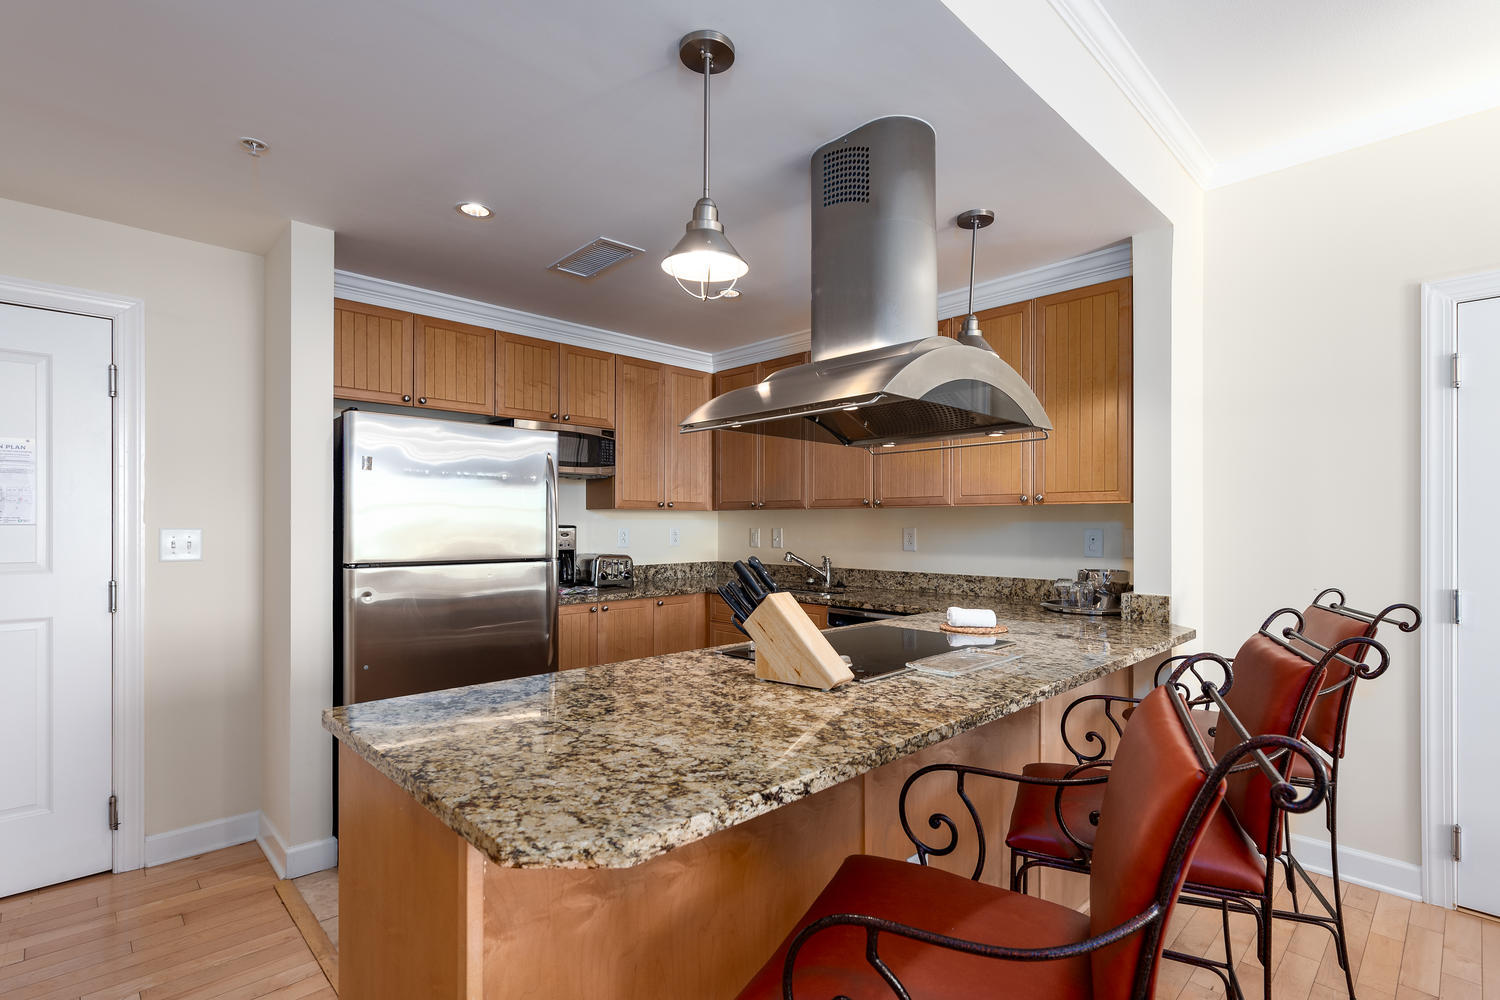 Wild Dunes Homes For Sale - 405/407 B Village At Wild Dunes, Isle of Palms, SC - 14